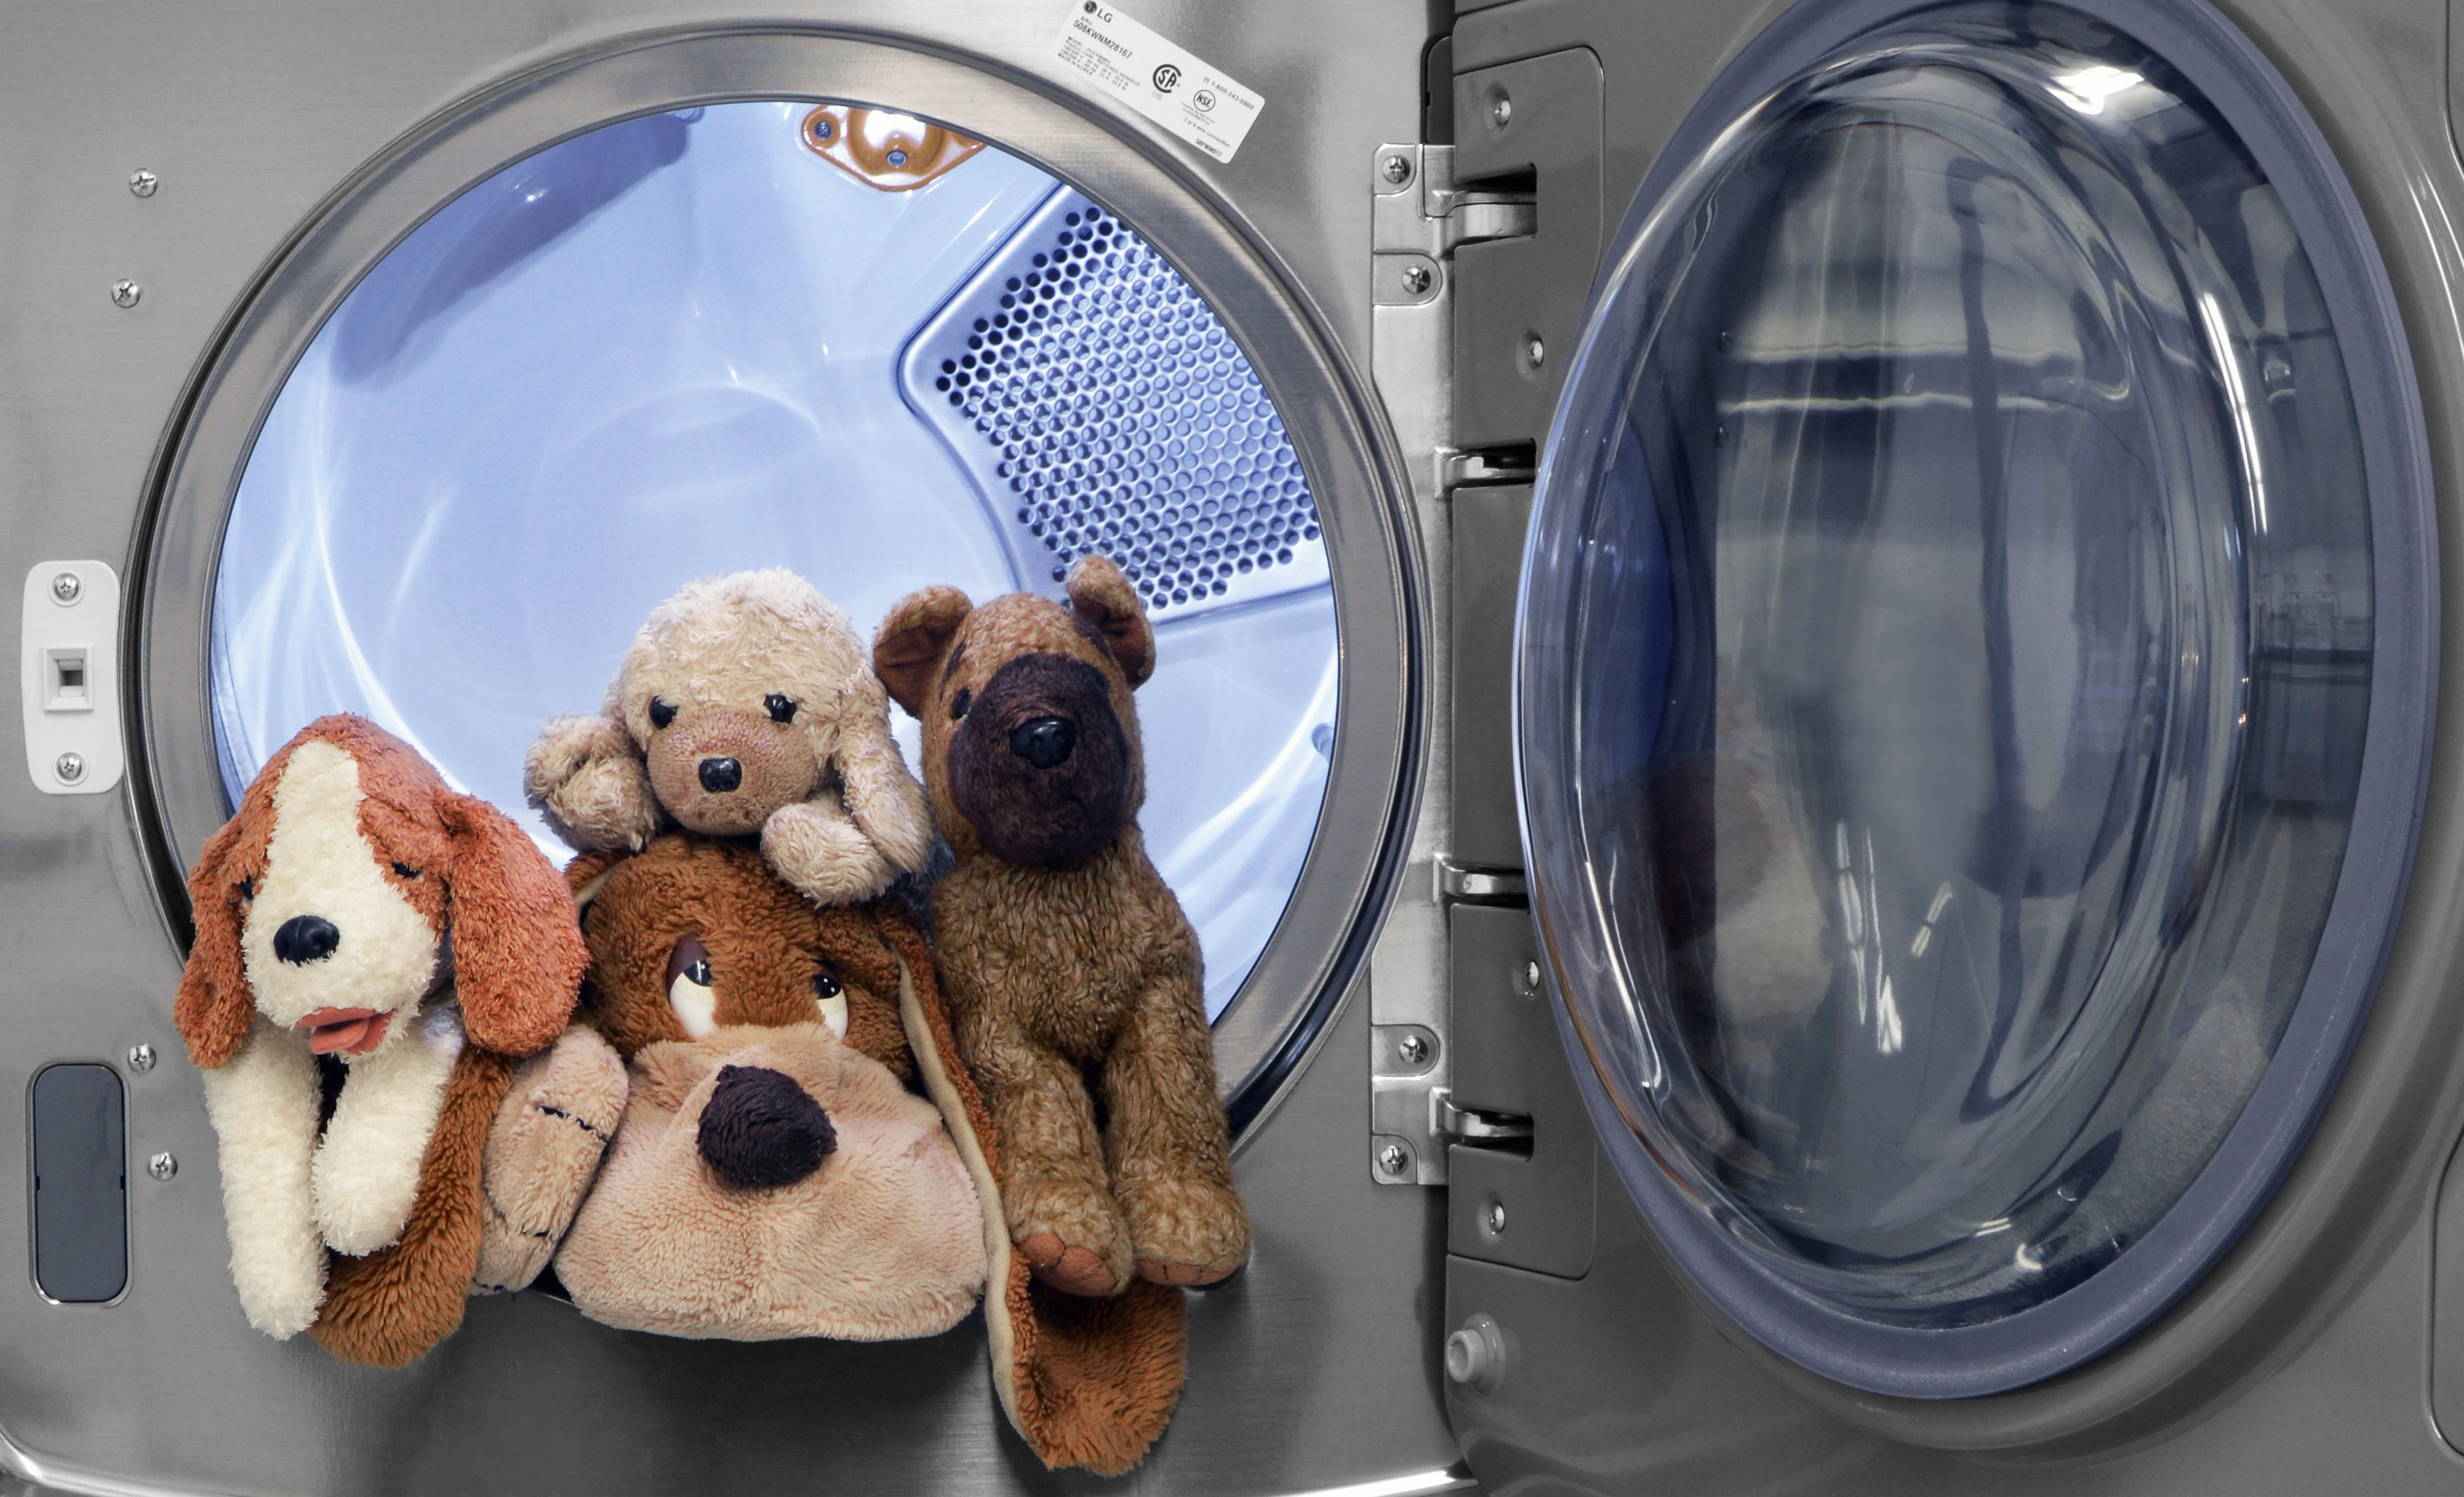 Can You Wash Stuffed Animals In The Washing Machine Here S How To Wash Your Child S Favorite Stuffed Animal Washing Stuffed Animals Clean Stuffed Animals Washing Machine